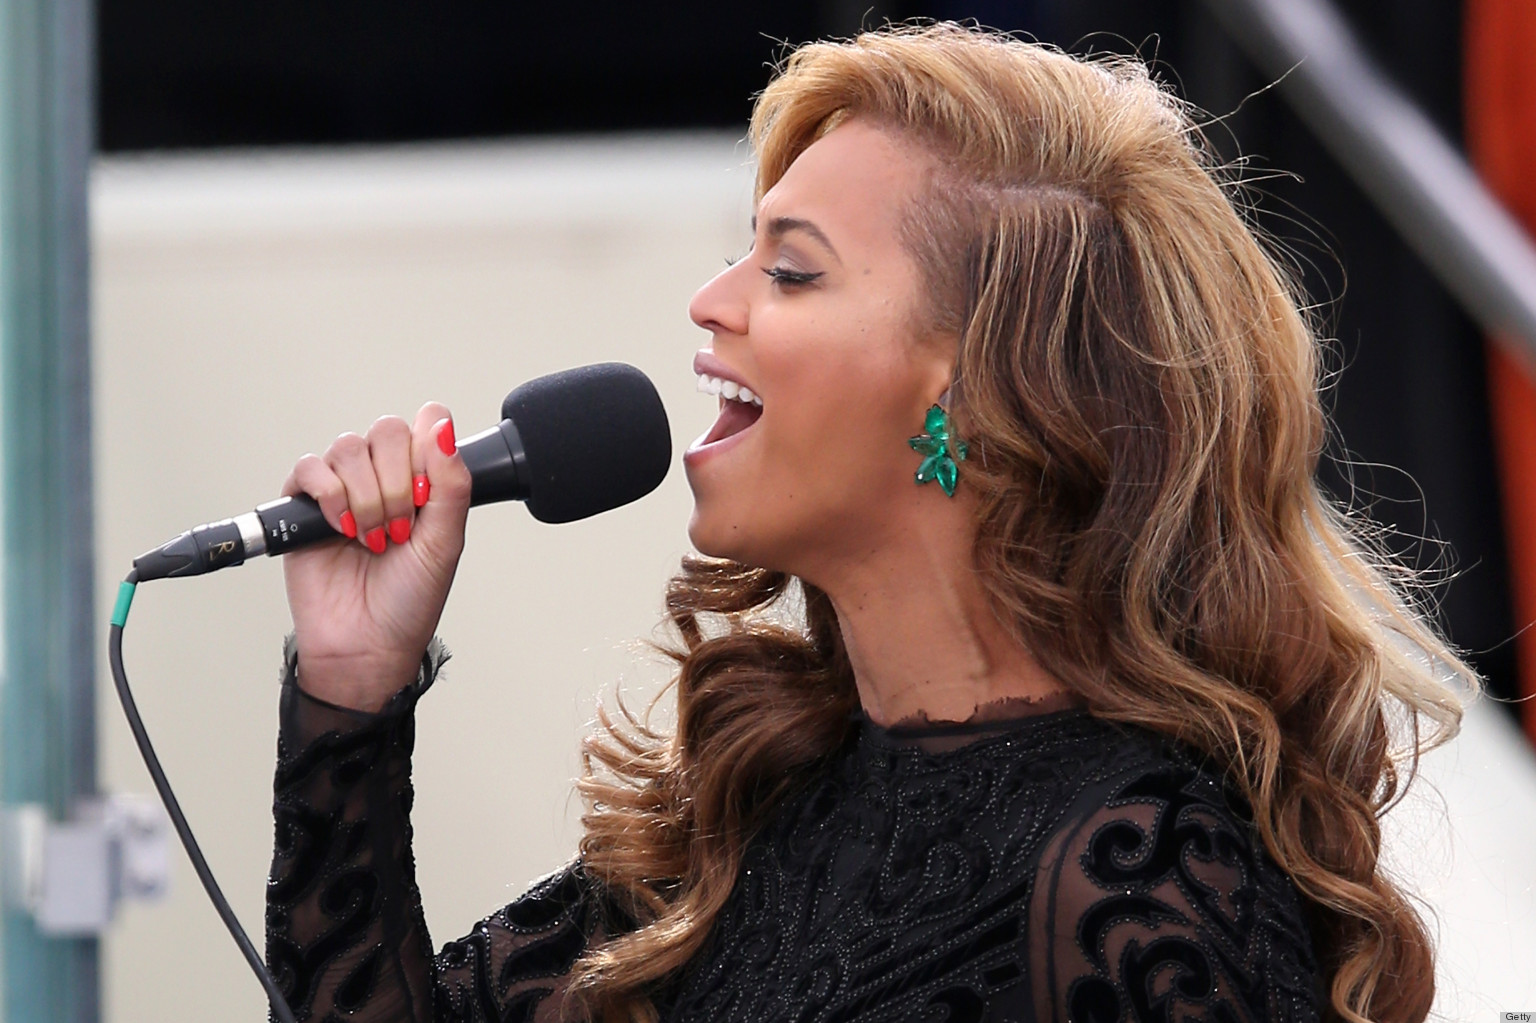 beyonce nails national anthem with hot orange manicure at